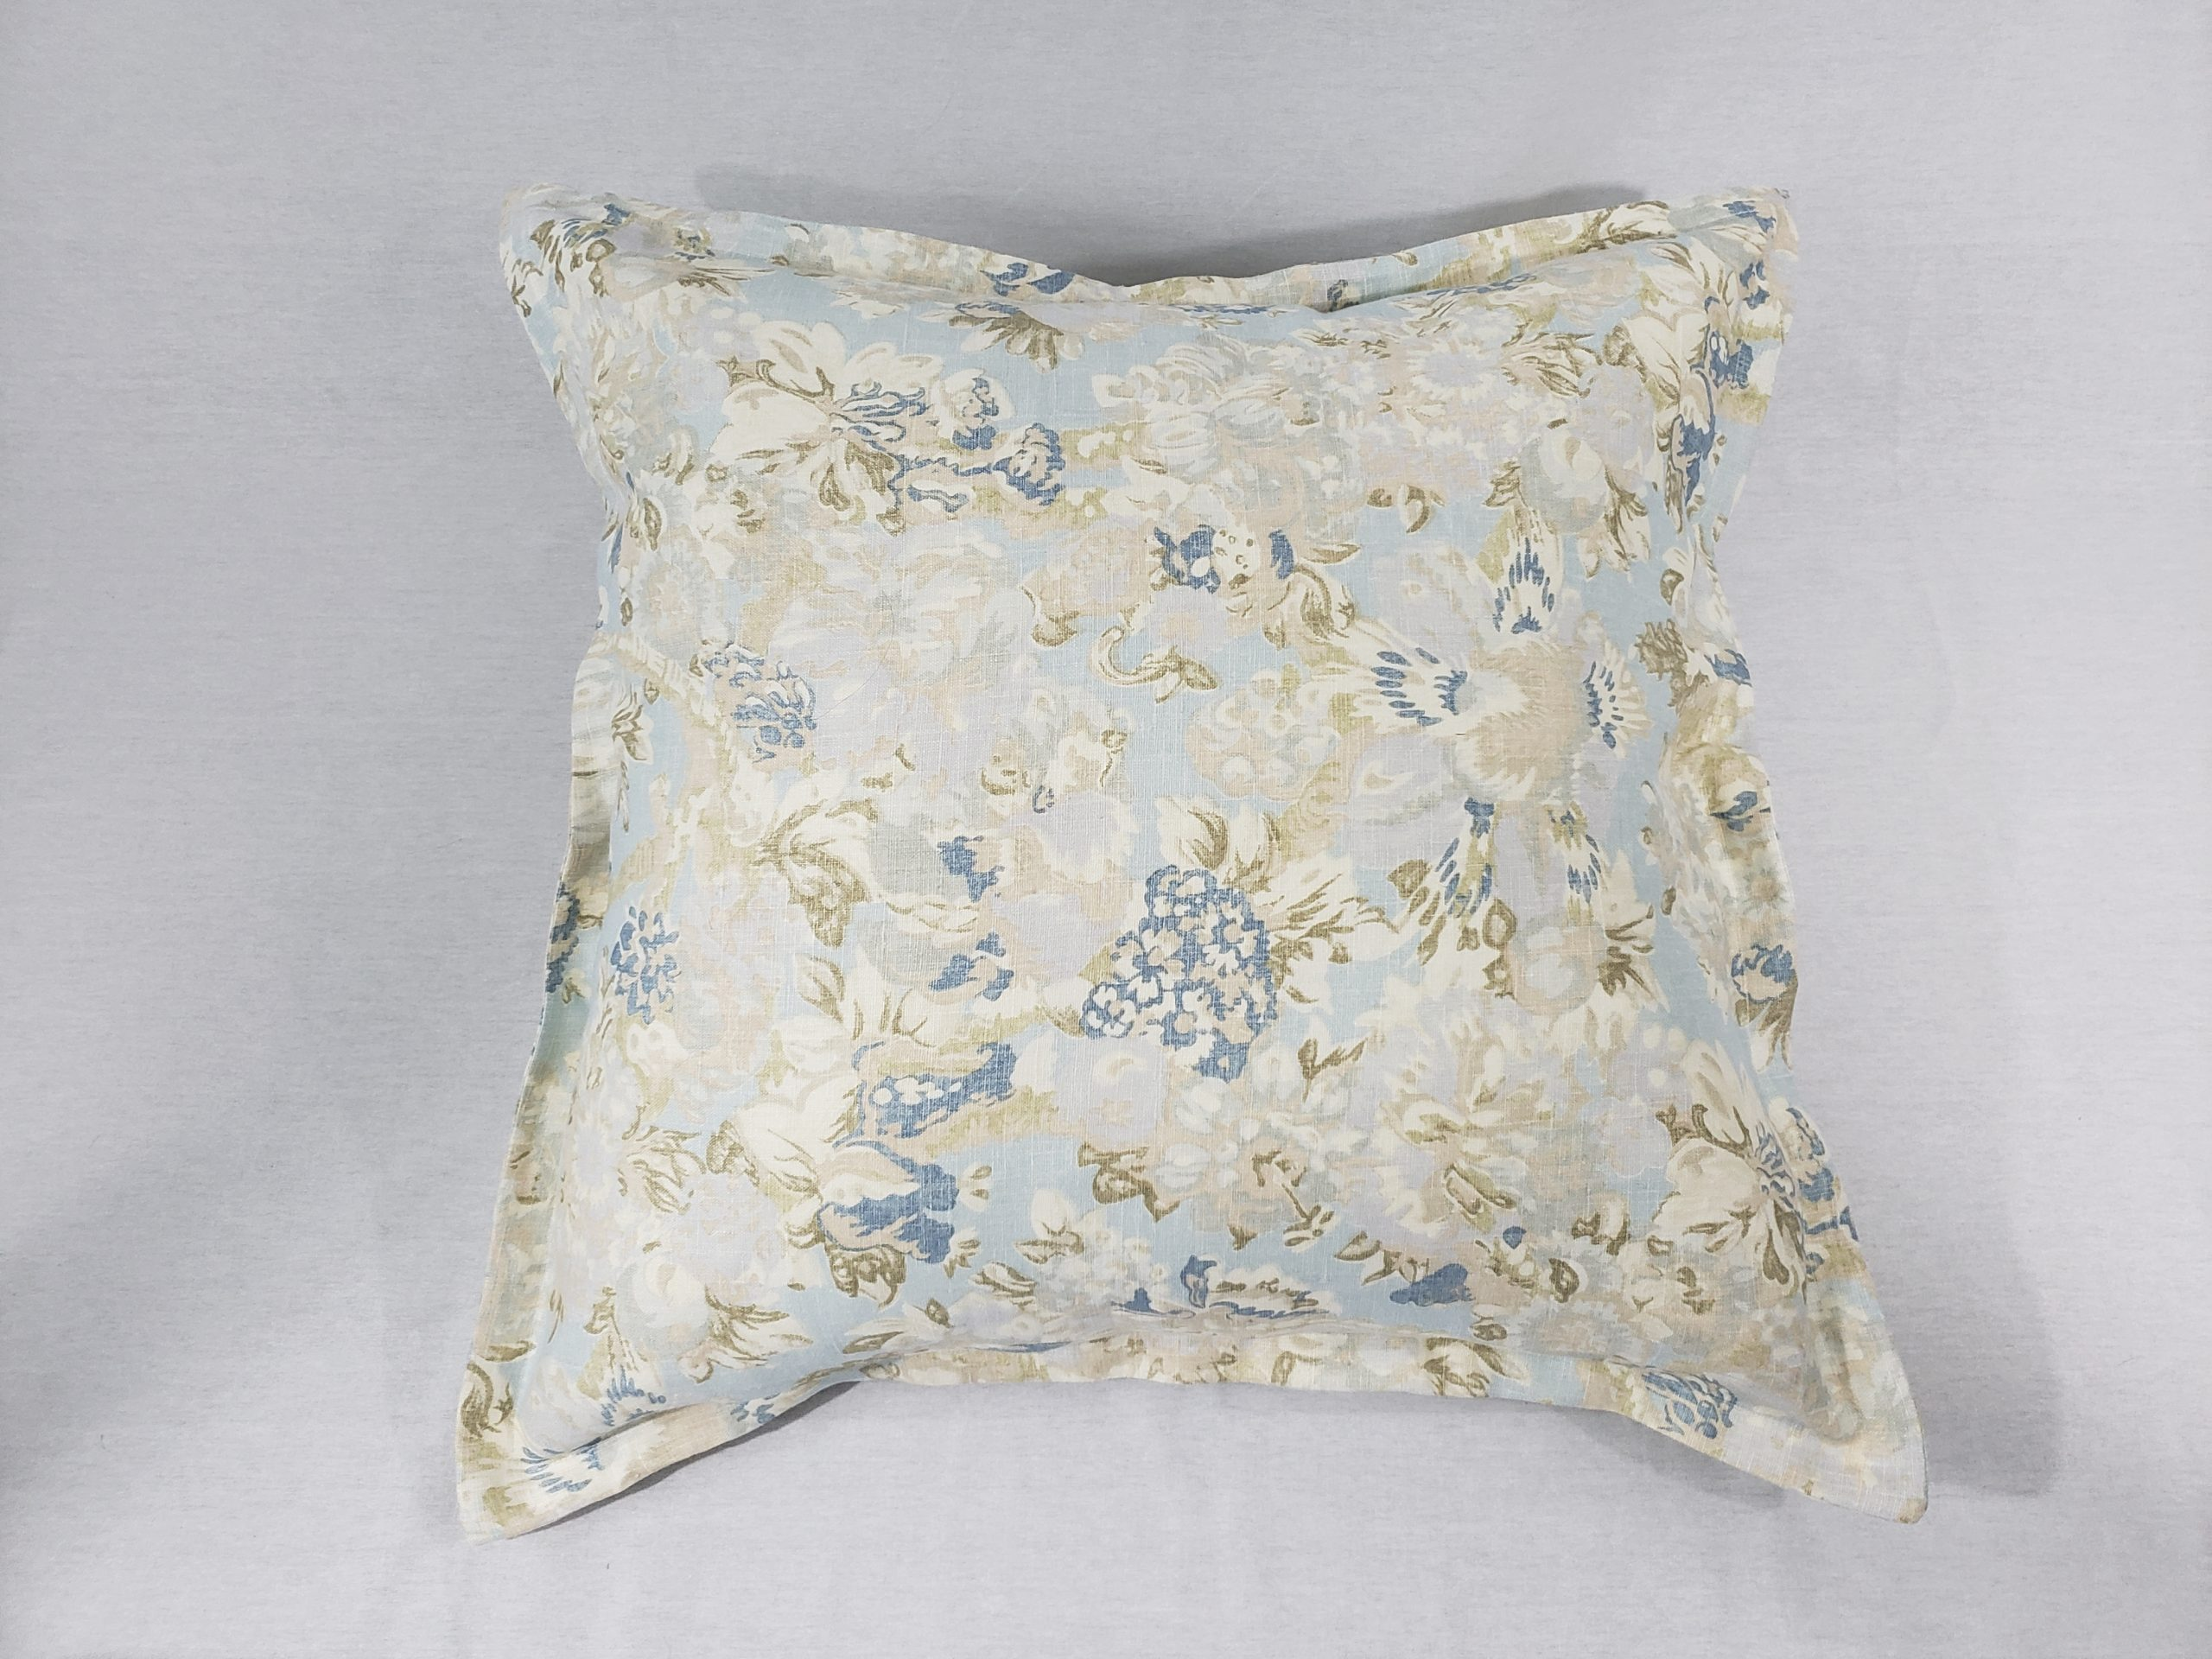 A baby blue floral cushion with flange